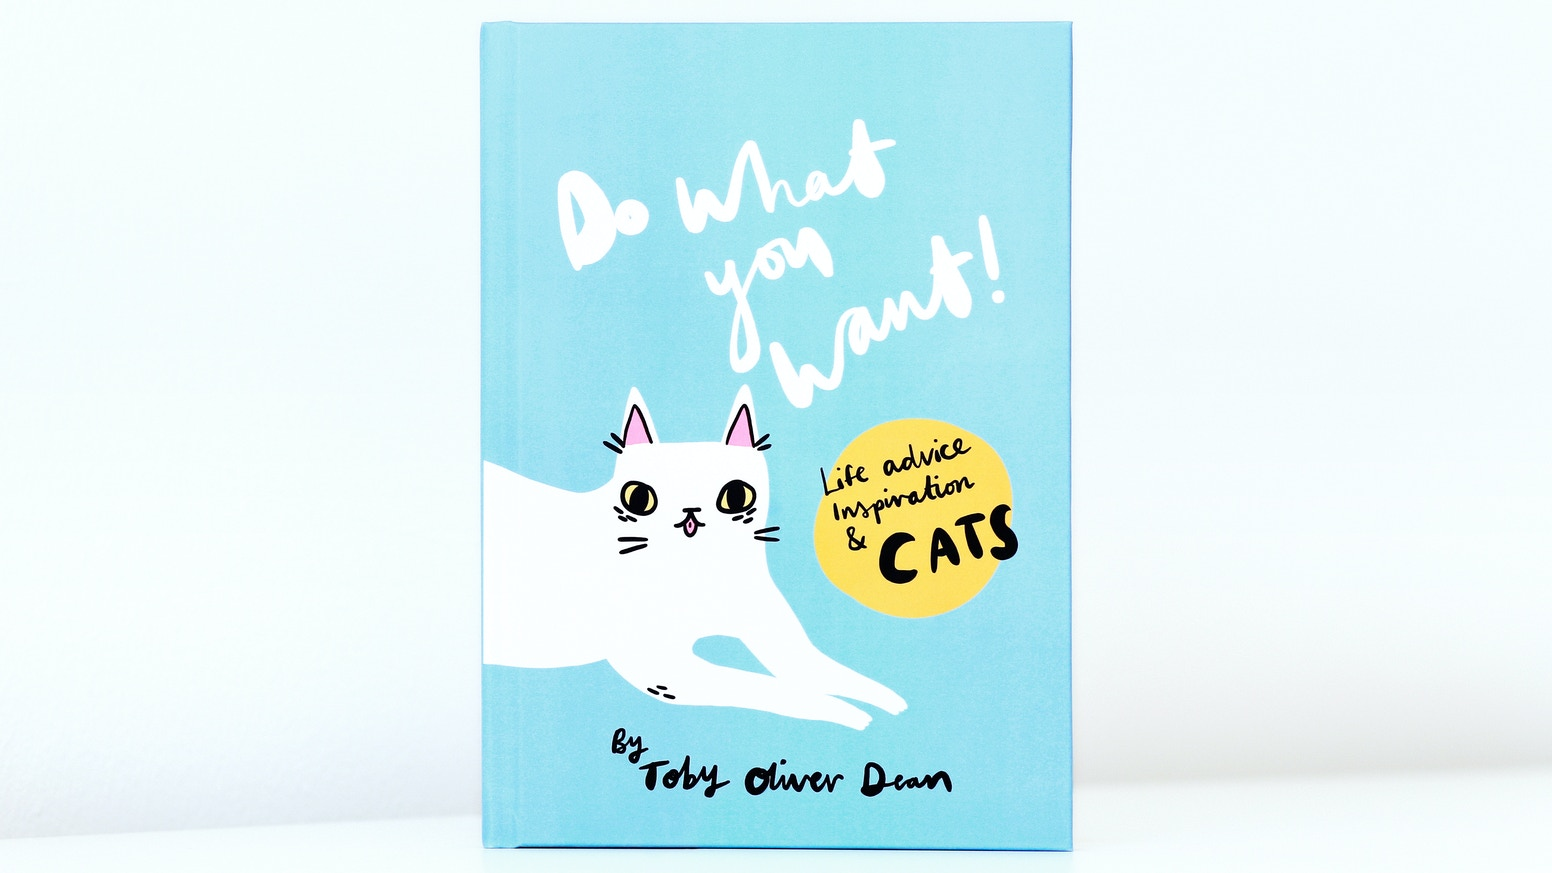 The first I LIKE CATS hardback book! 100 colourful pages of cats and words of wisdom, illustrated by @tobyilikecats